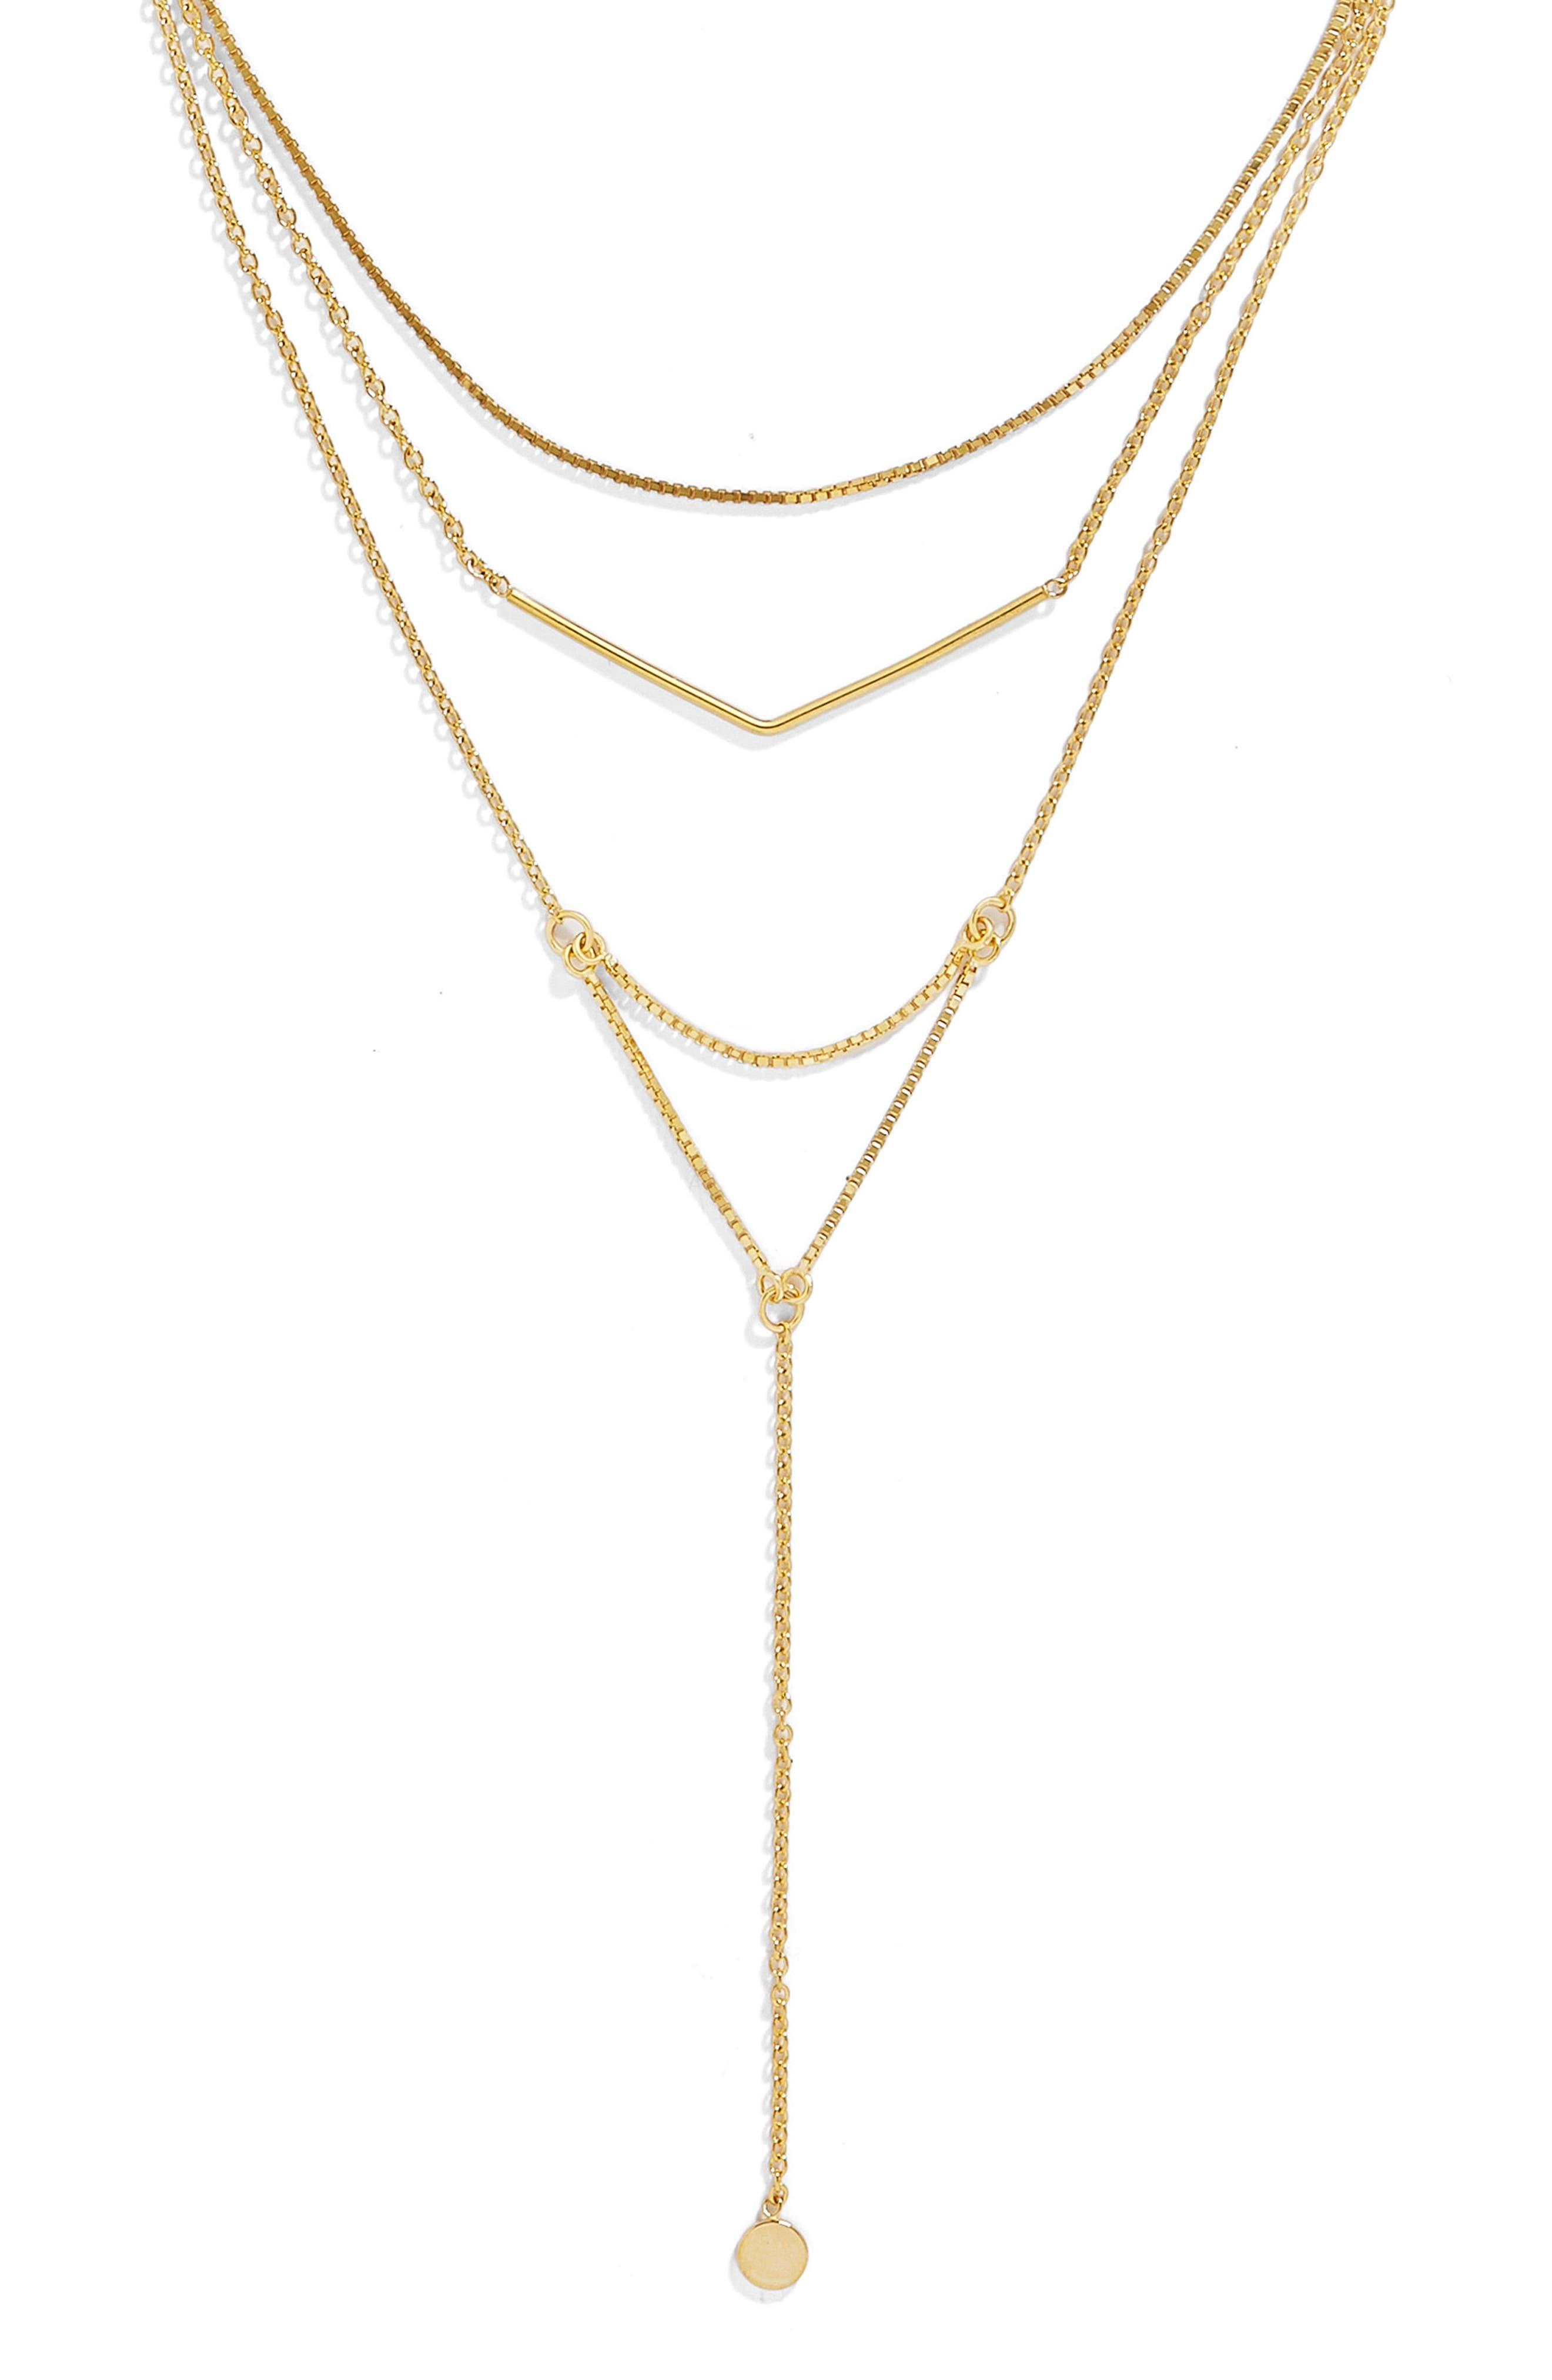 Tris Everyday Connected Y 18-Karat Gold Plate Necklace,                             Alternate thumbnail 2, color,                             710